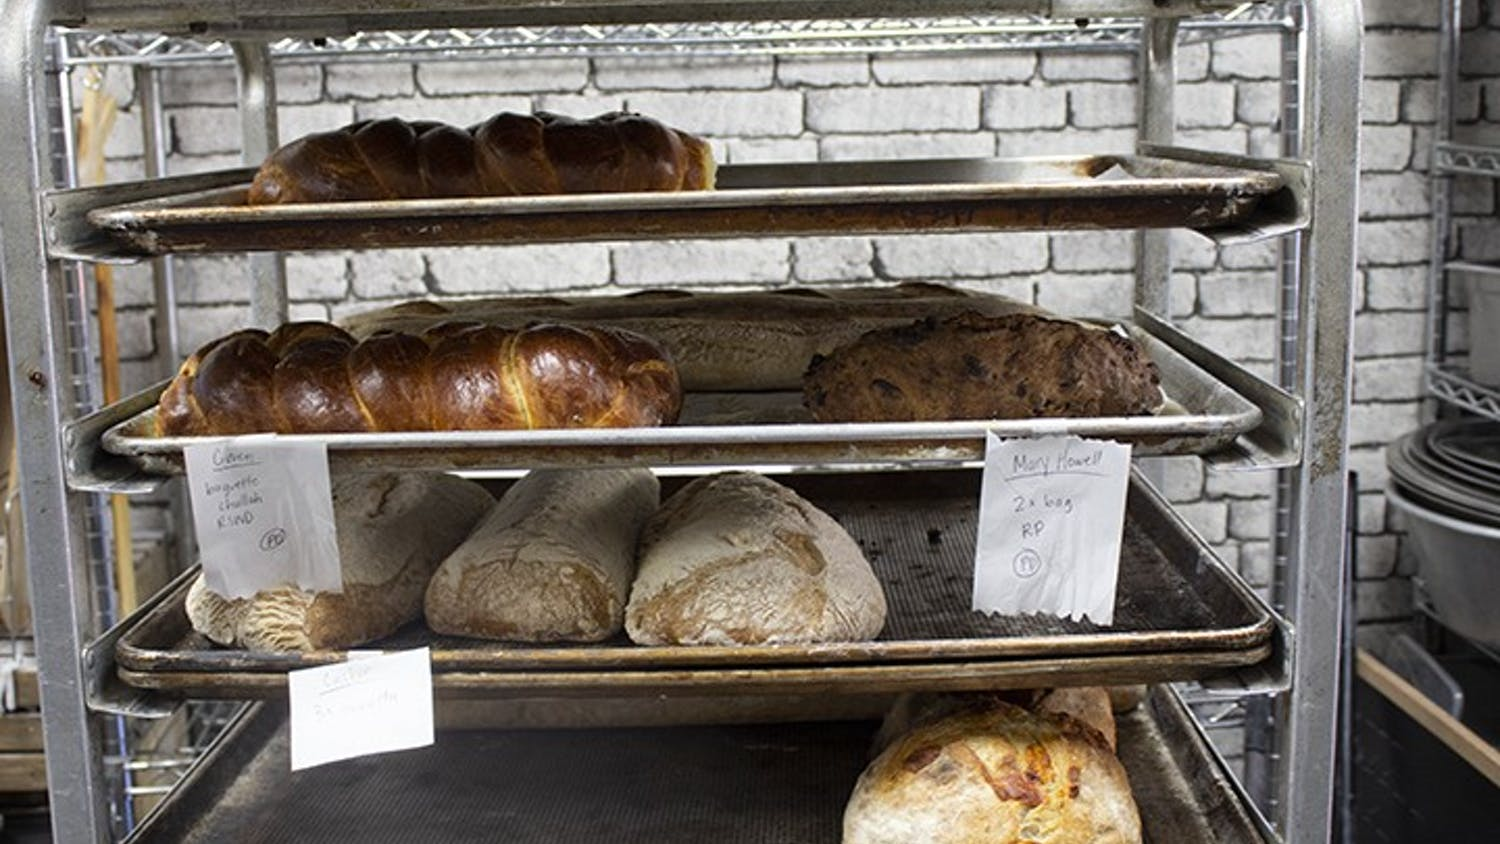 Crust Bakehouseinventory sits on a waiting rack. Crust Bakehouse offers fresh bread, scones, pastries and more.